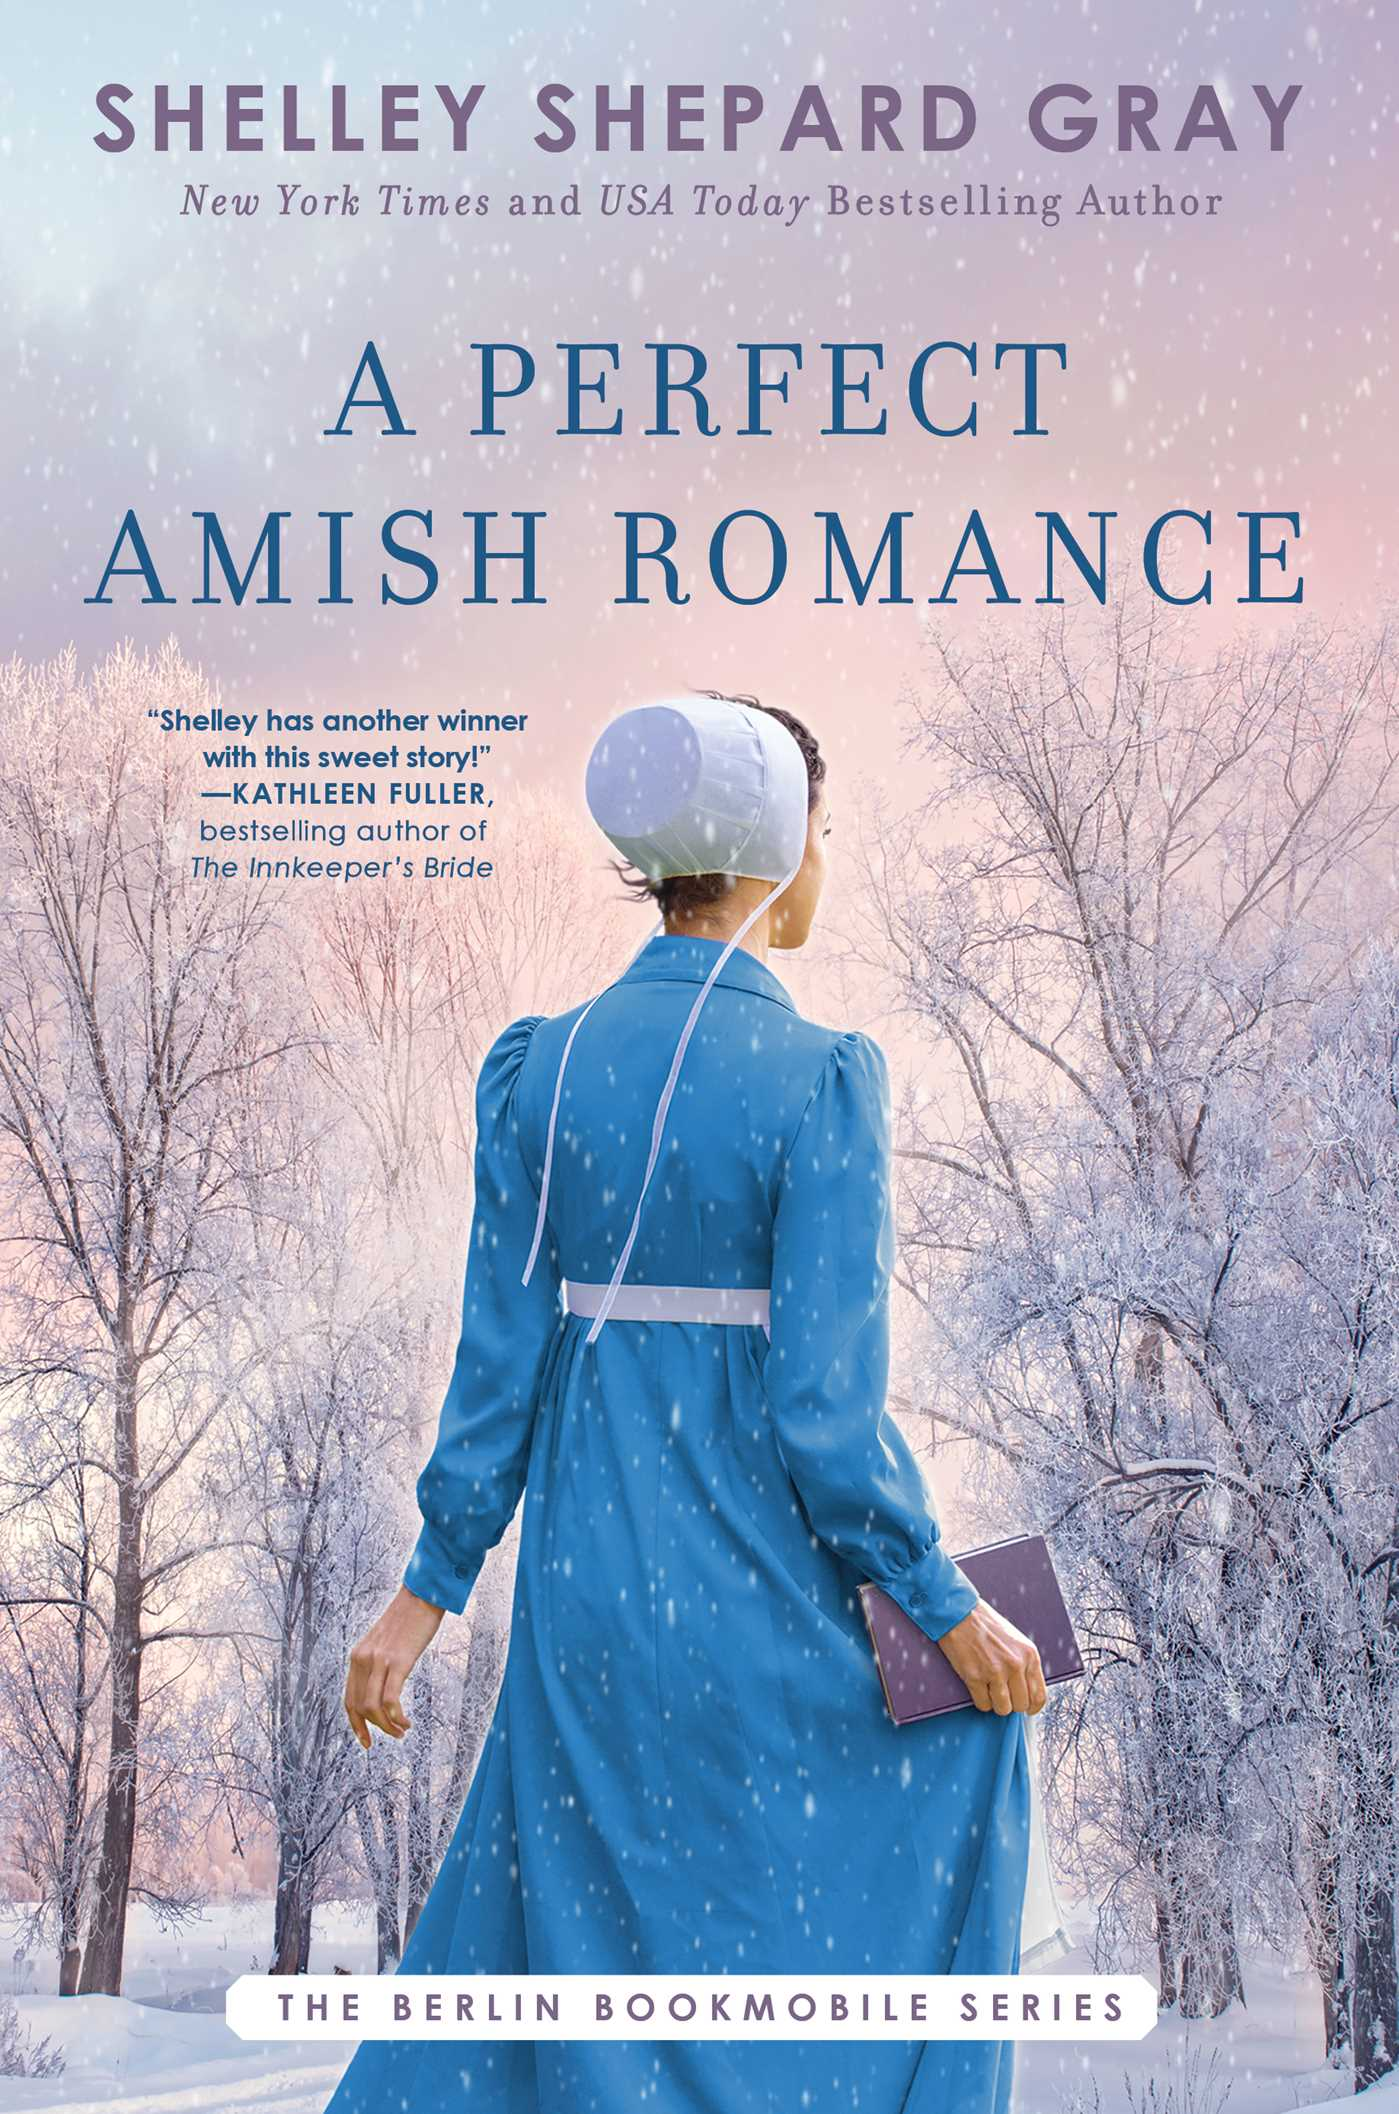 A Perfect Amish Romance (Berlin Bookmobile #1)